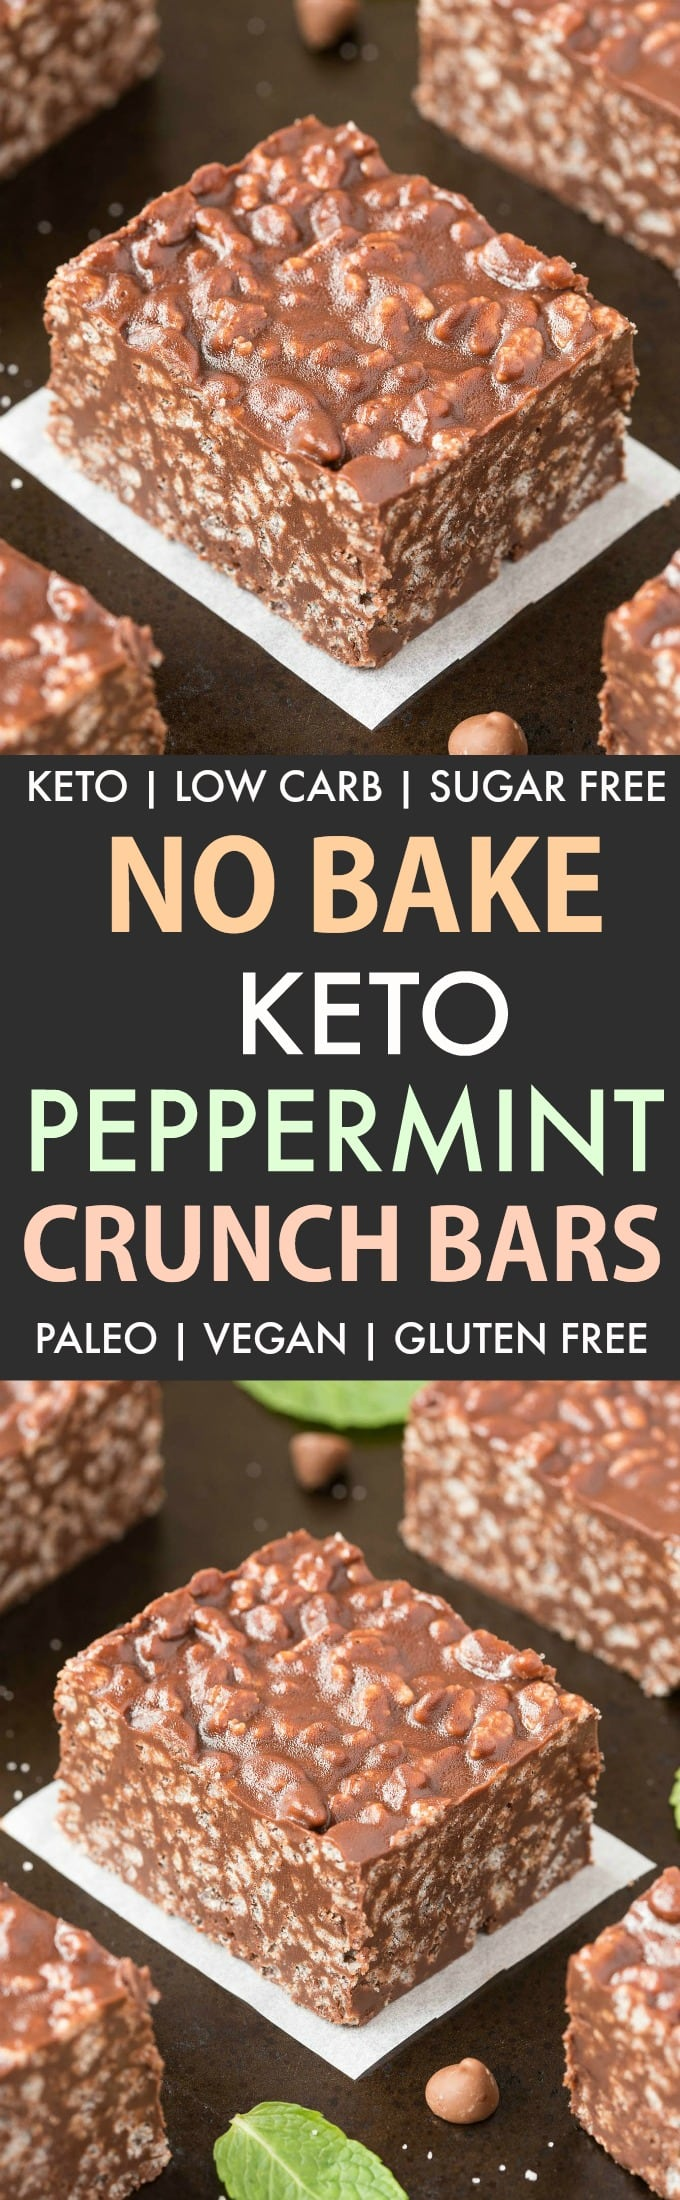 Homemade Keto Peppermint Chocolate Crunch Bars (Paleo, Vegan, Gluten Free, Sugar Free, Low Carb)- An easy 6-ingredient nut-free recipe for no bake chocolate peppermint crunch bars like the candy bar! Ready in minutes! #peppermintchocolate #keto #paleo #vegan #dairyfree #nutfree | Recipe on thebigmansworld.com